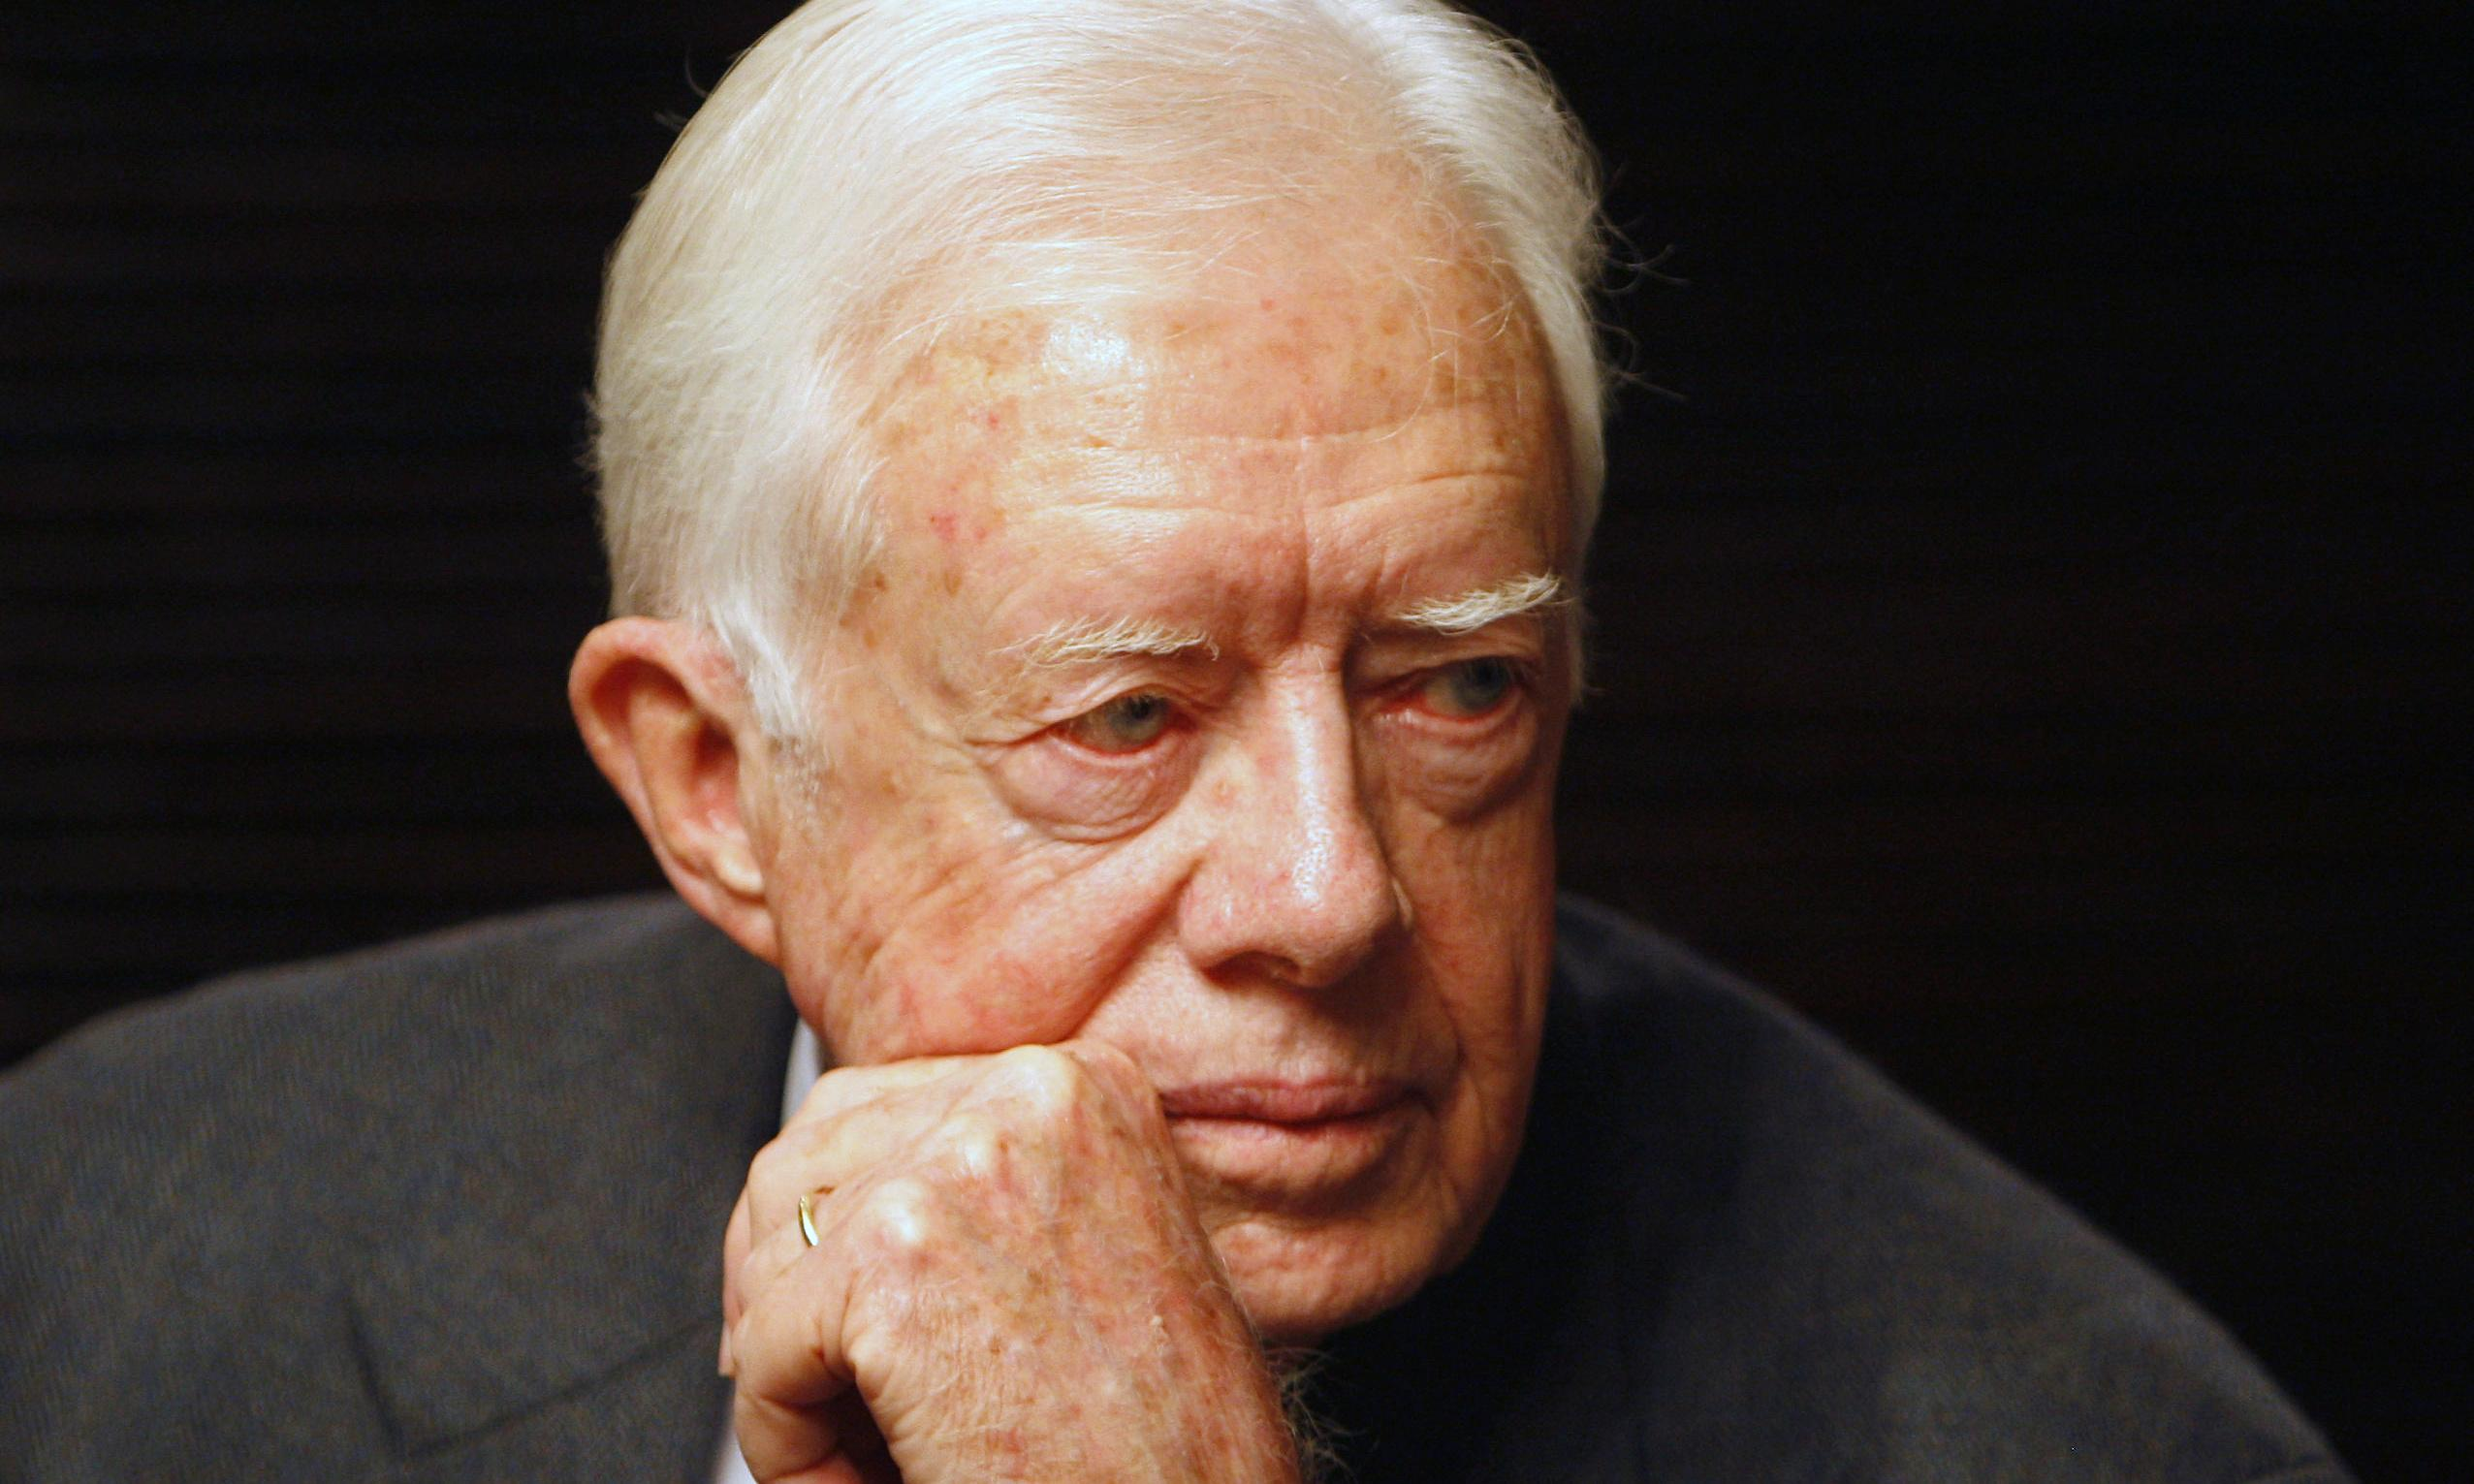 Jimmy Carter recovering in hospital after brain surgery